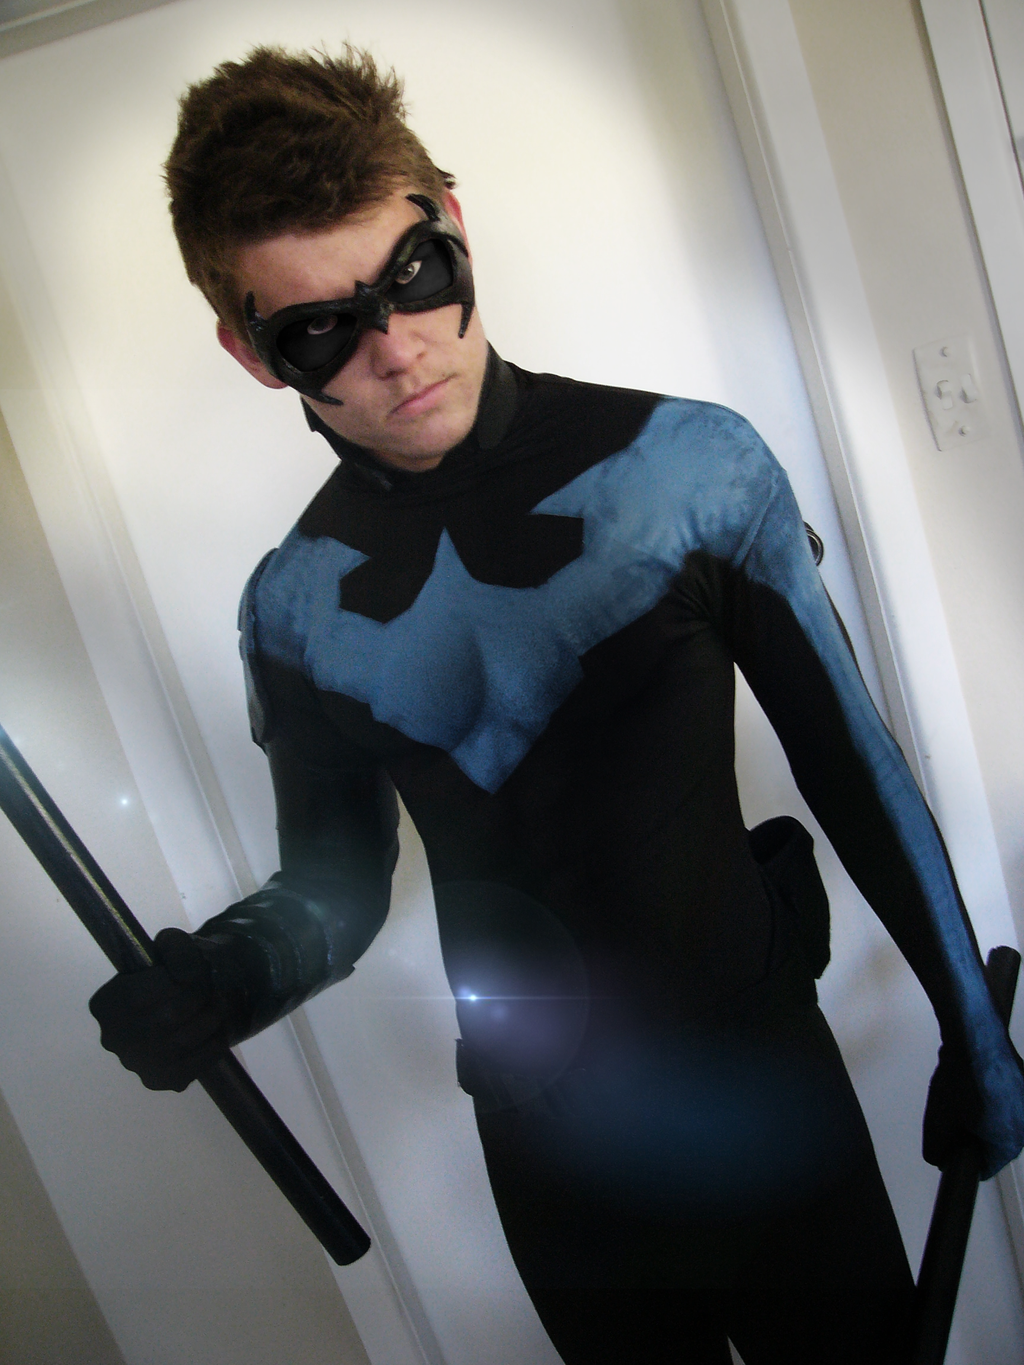 Red Robin/Nightwing mask /costume build with casting photos!